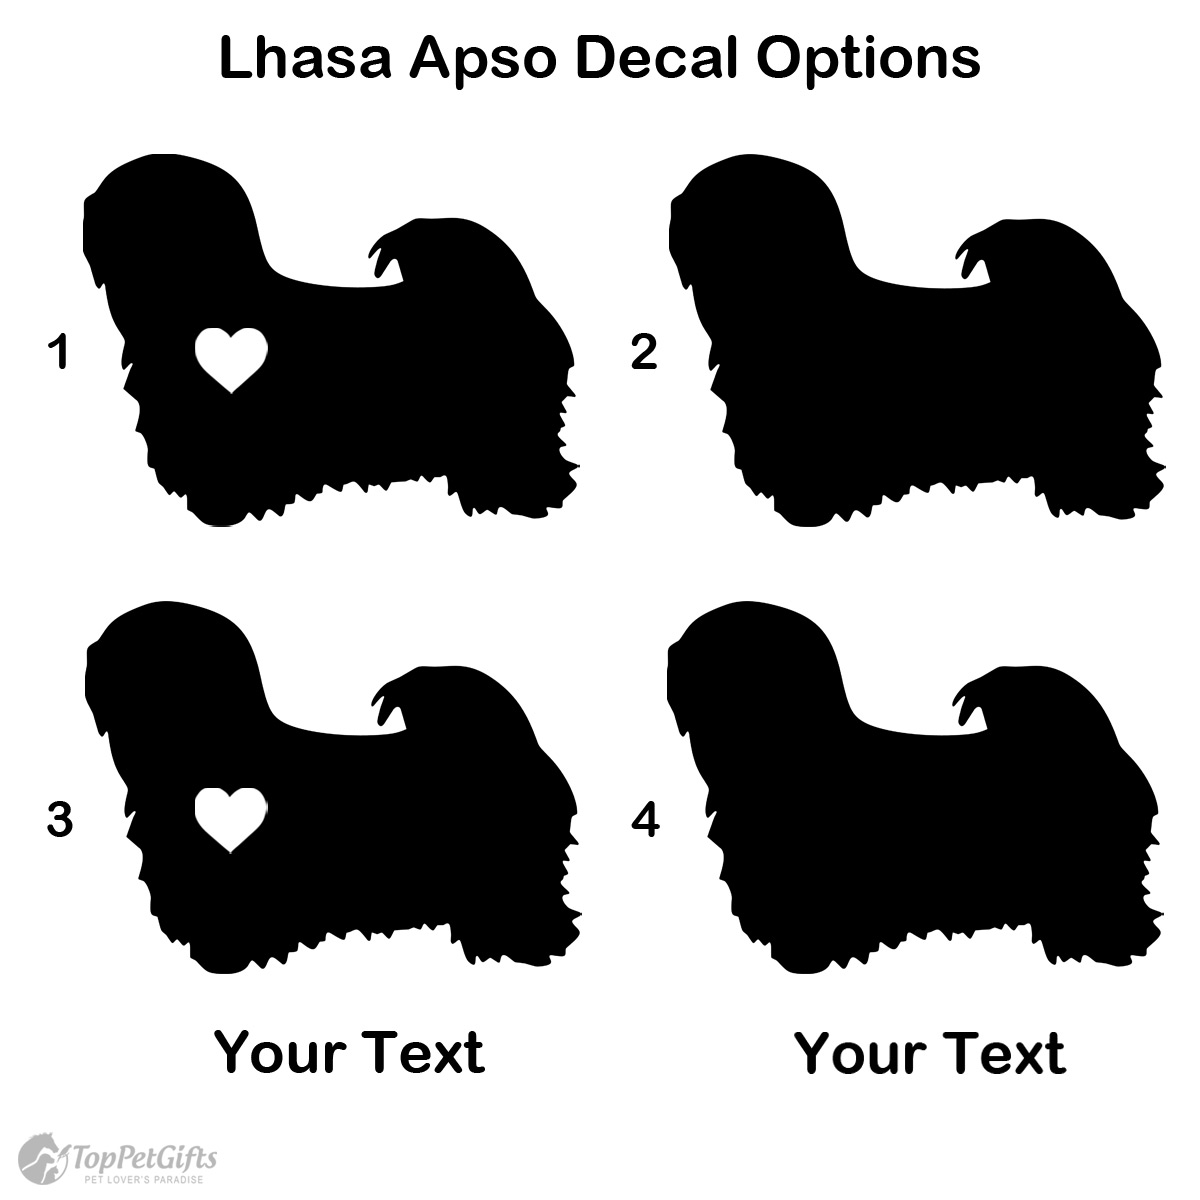 Personalized Lhasa Apso Decal